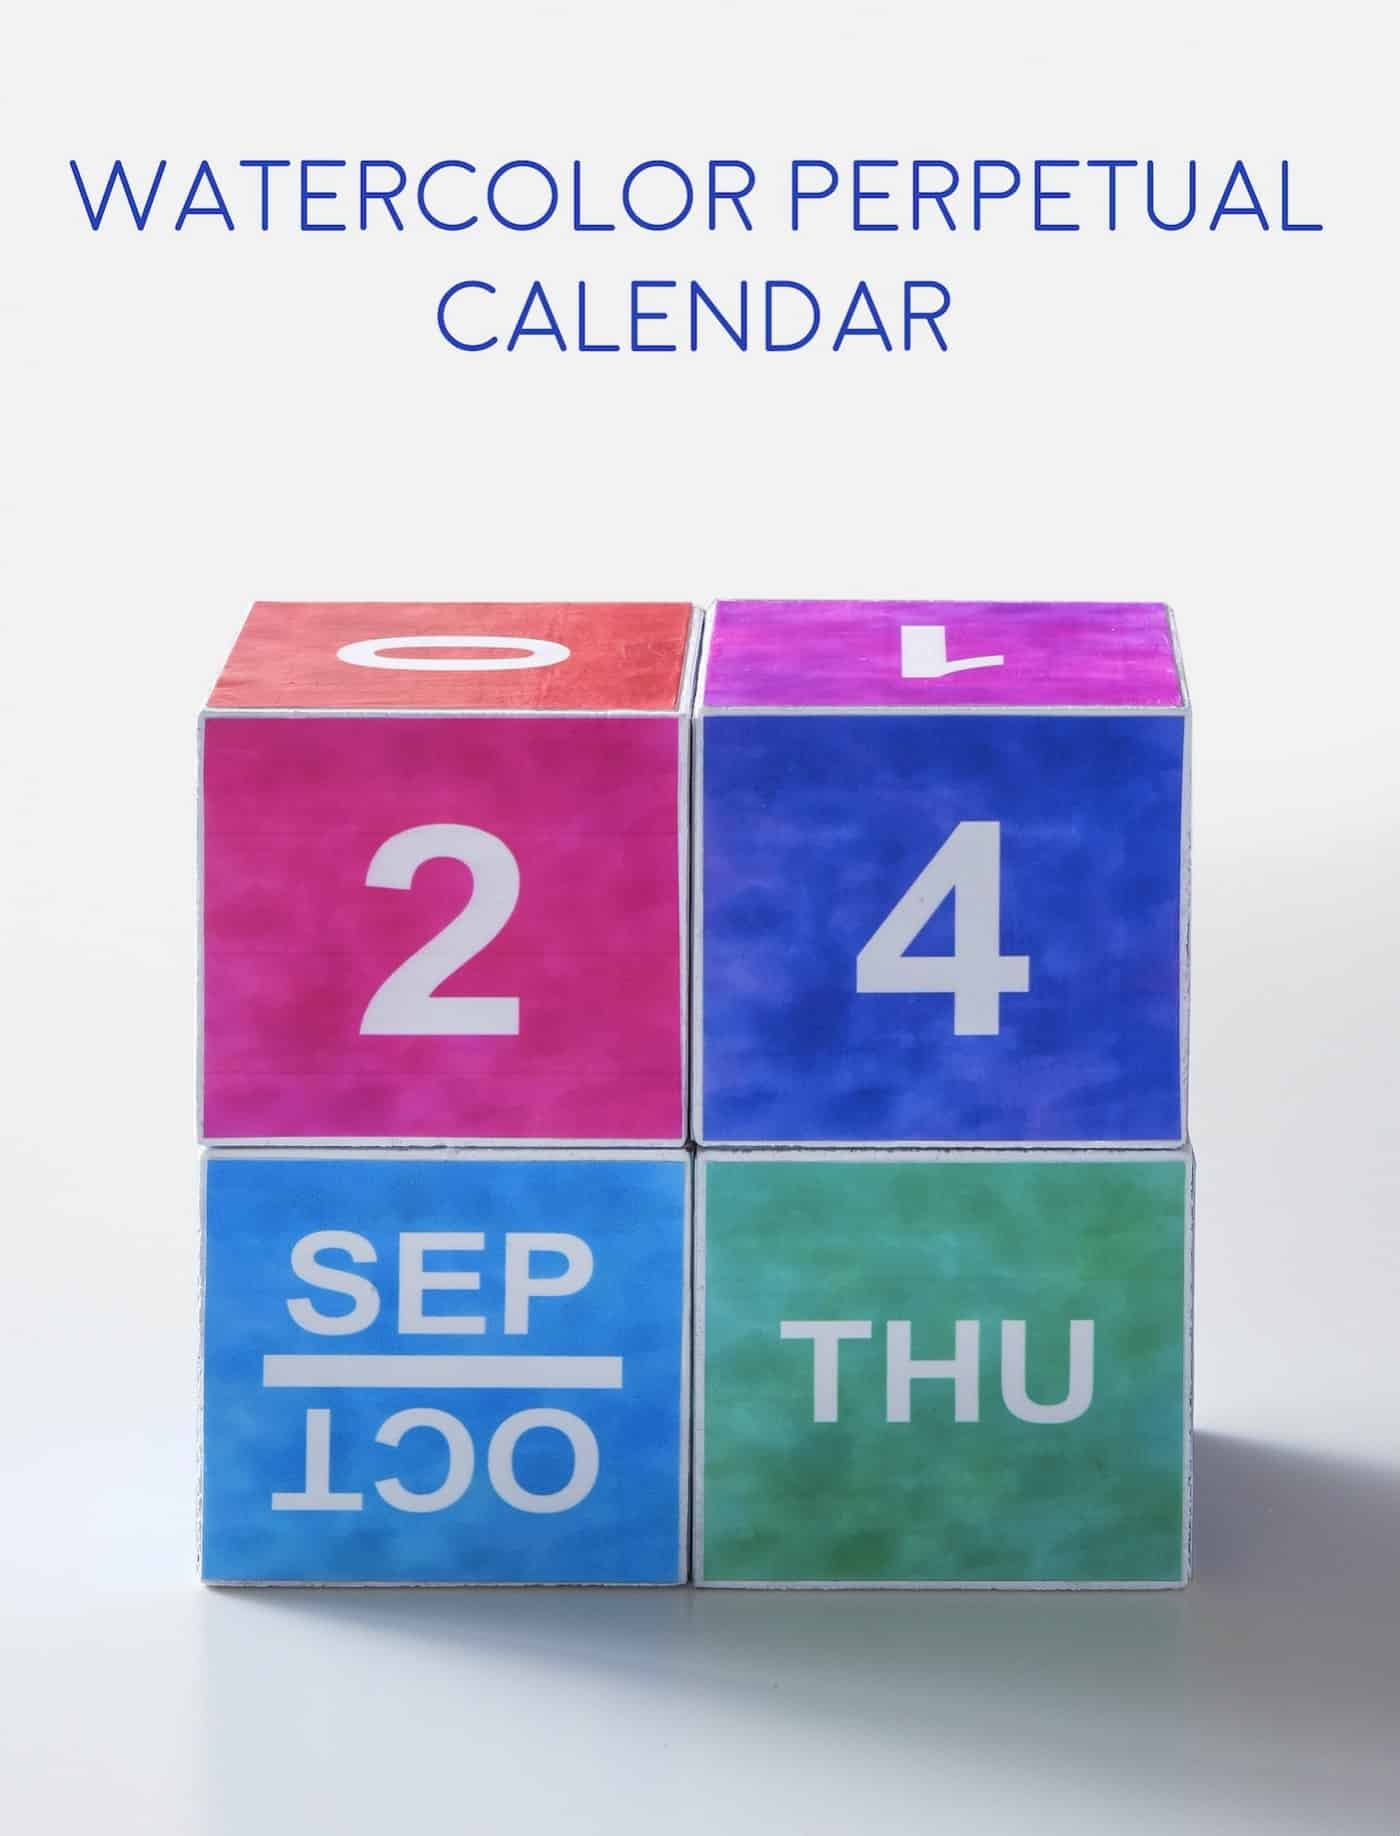 Watercolor Perpetual Calendar (With Free Printable) - Mod